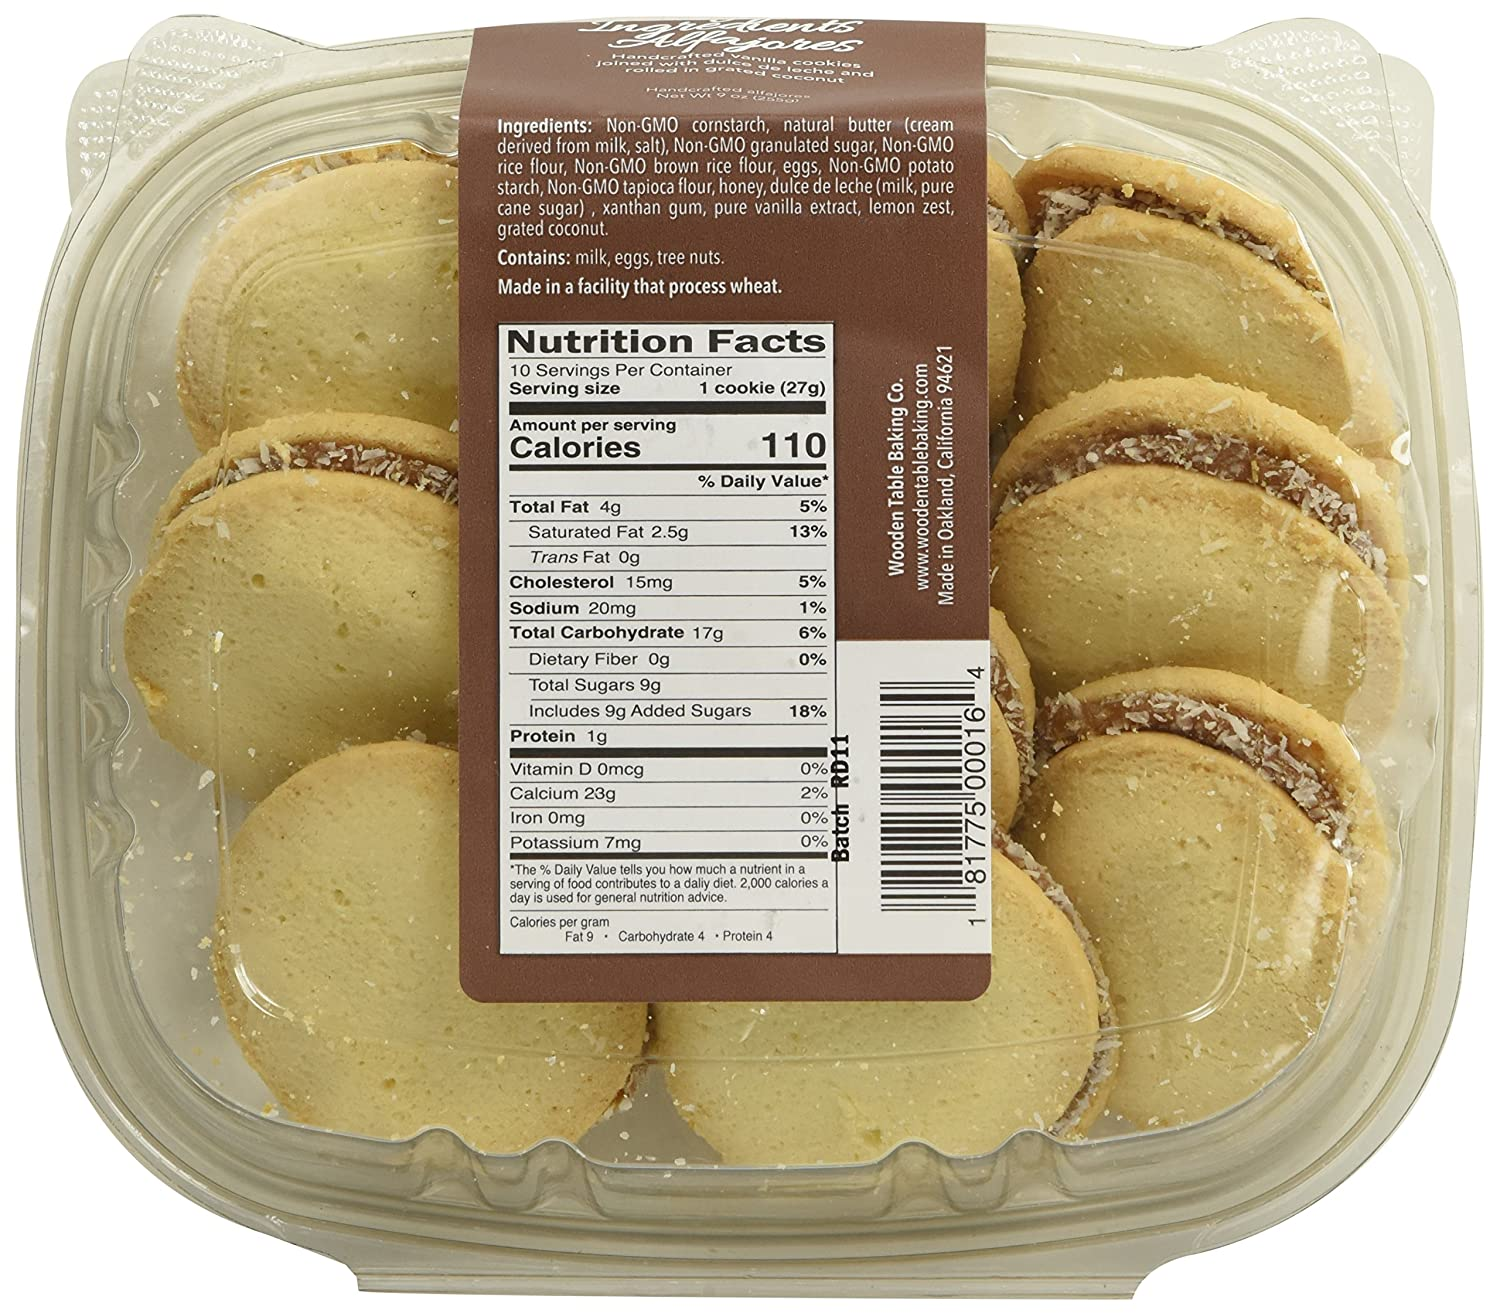 Wooden Table Gluten Free Traditional Alfajores, 10 Oz: Amazon.com: Grocery & Gourmet Food